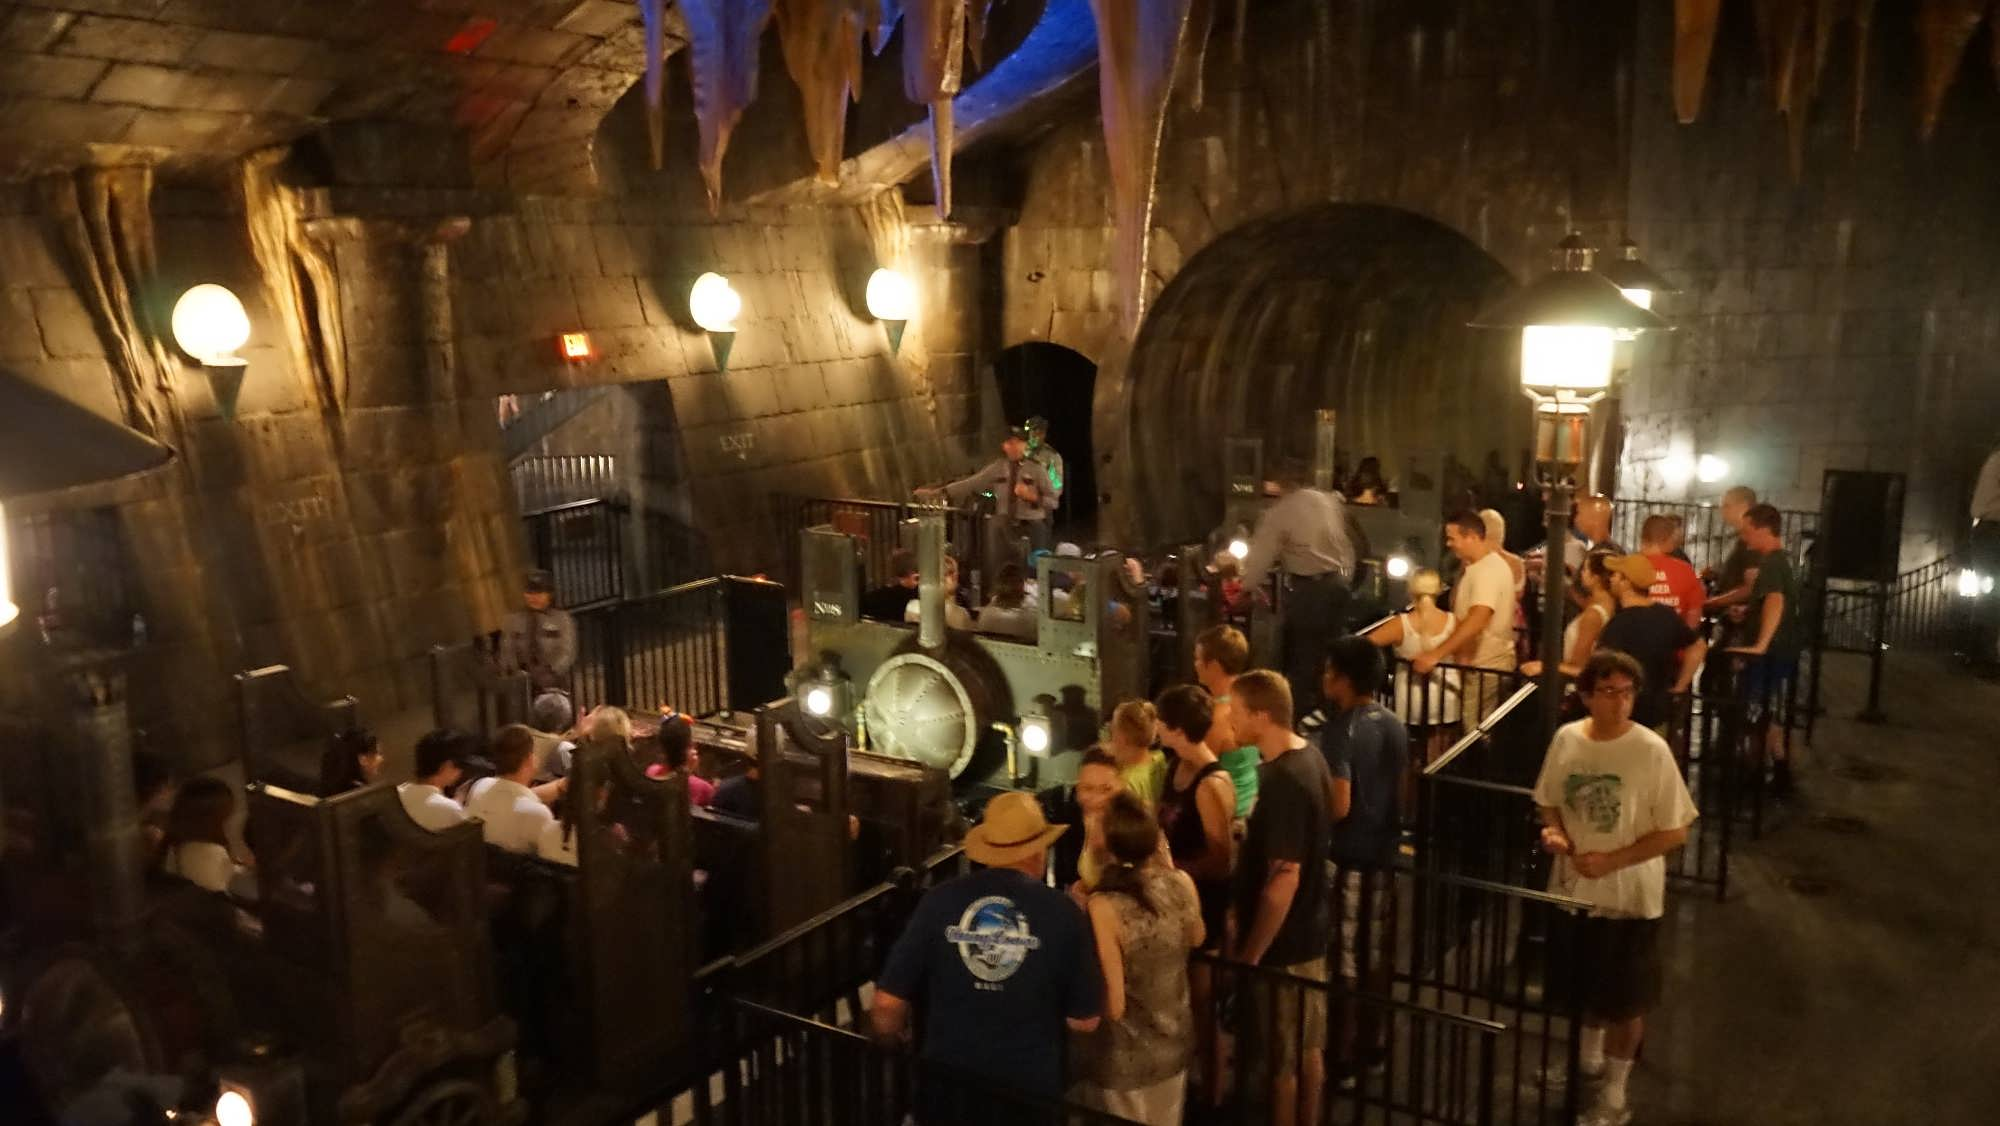 a description of the universal studios escape April 2012: this universal studios ride describe explains everything important about the rides, including details that could ruin the fun for people who want to be surprised.